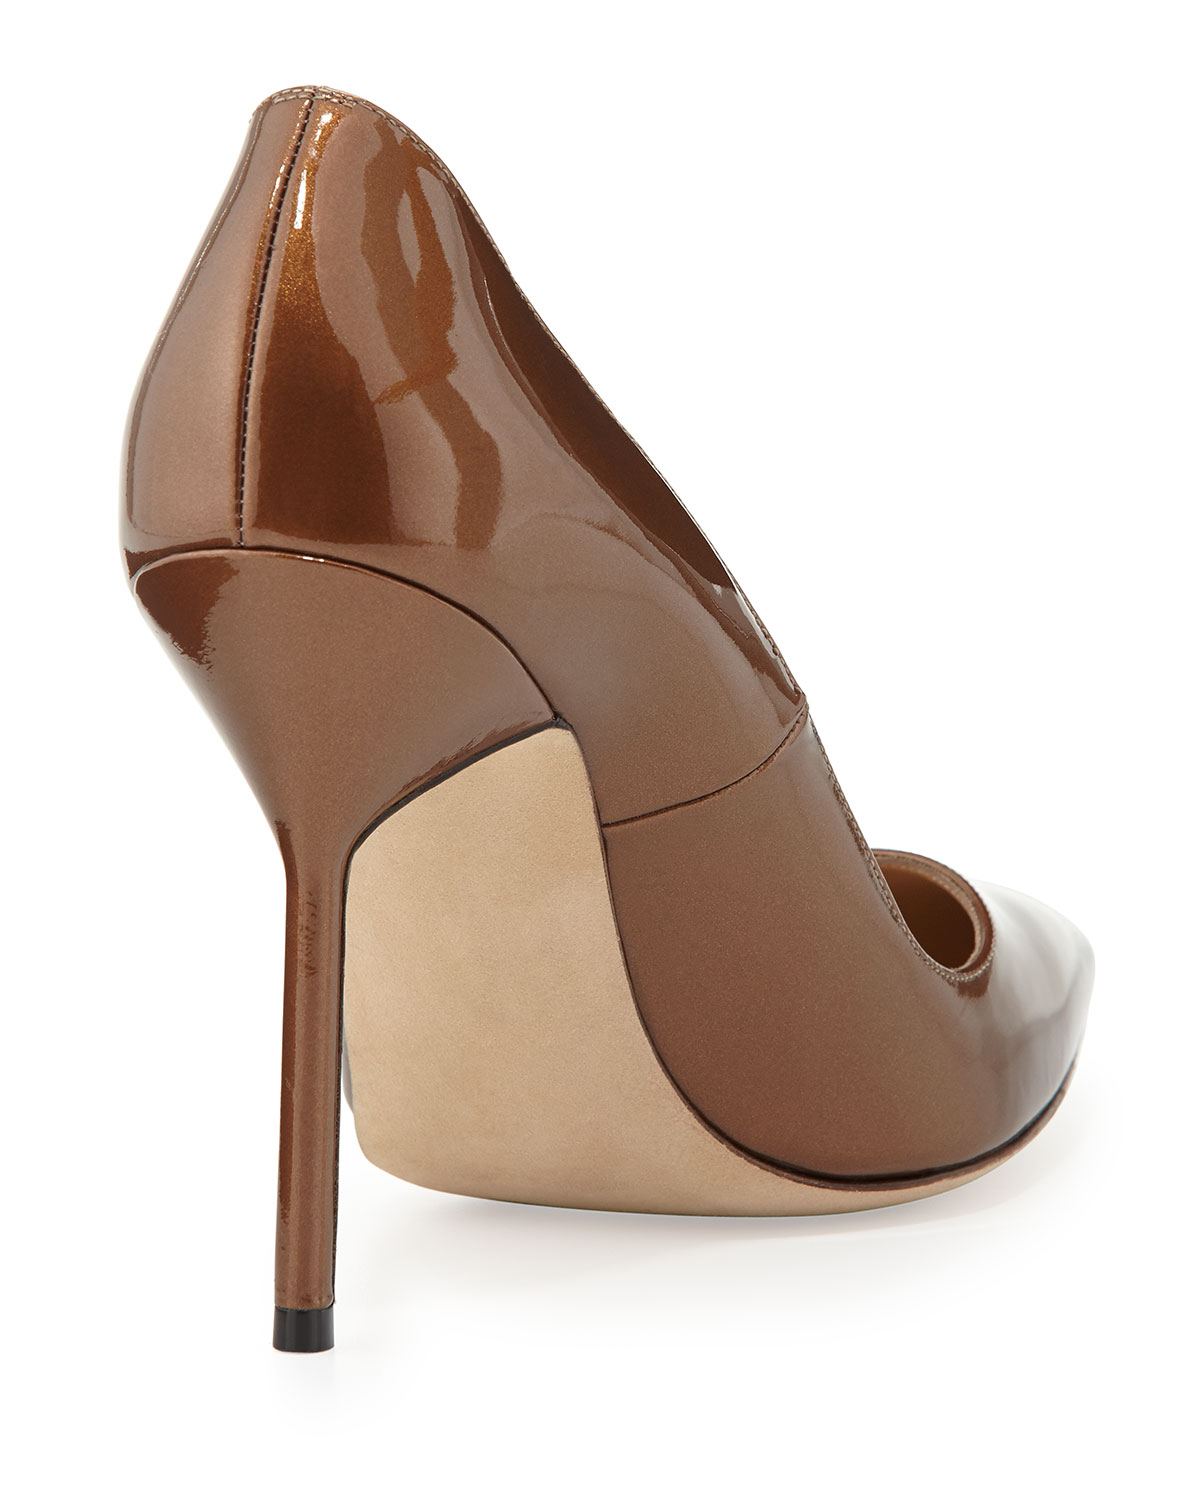 Manolo Blahnik Patent Leather Pointed-Toe Pumps pay with visa cheap online JXyXJXxy